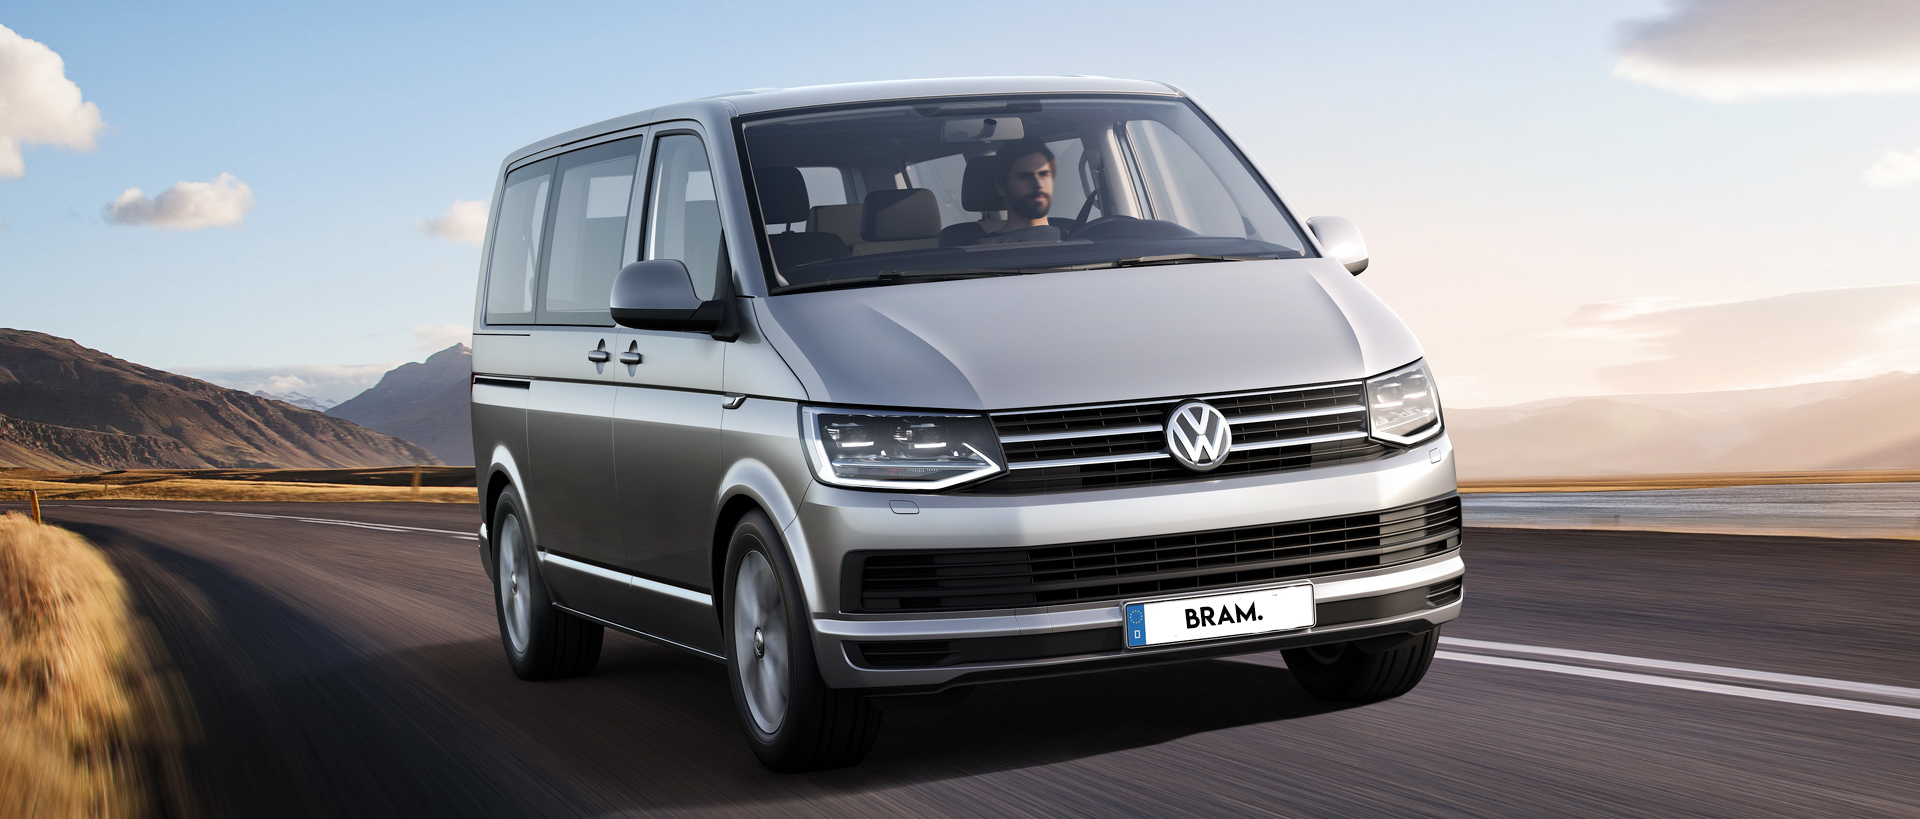 Transporter VW Lease